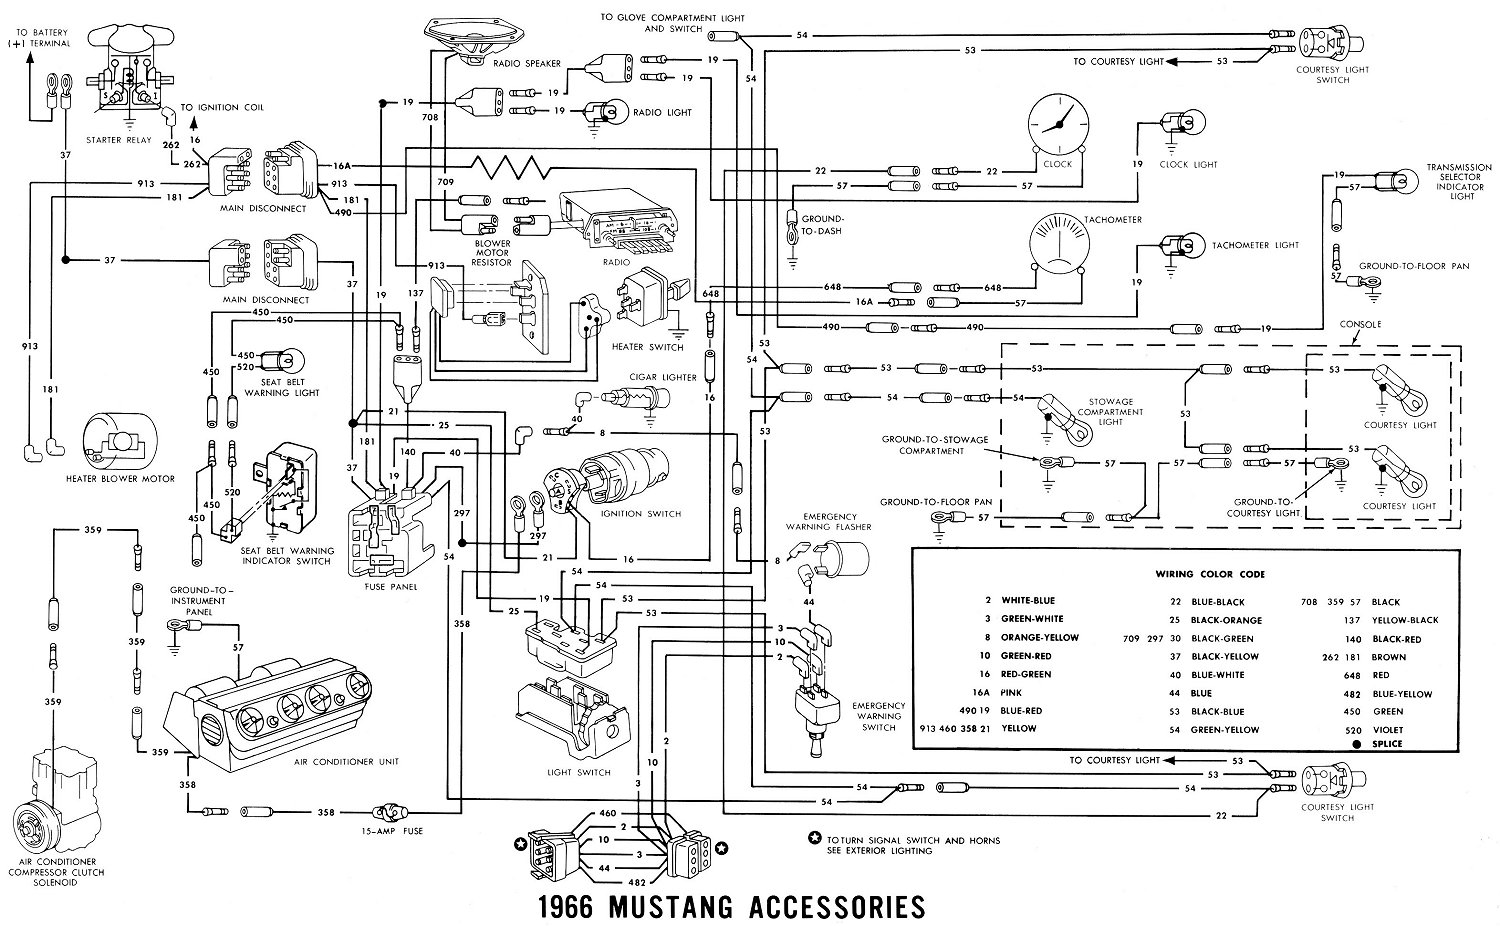 1966 Mustang Wiring Diagrams on 89 ford ranger 4x4 auto trans